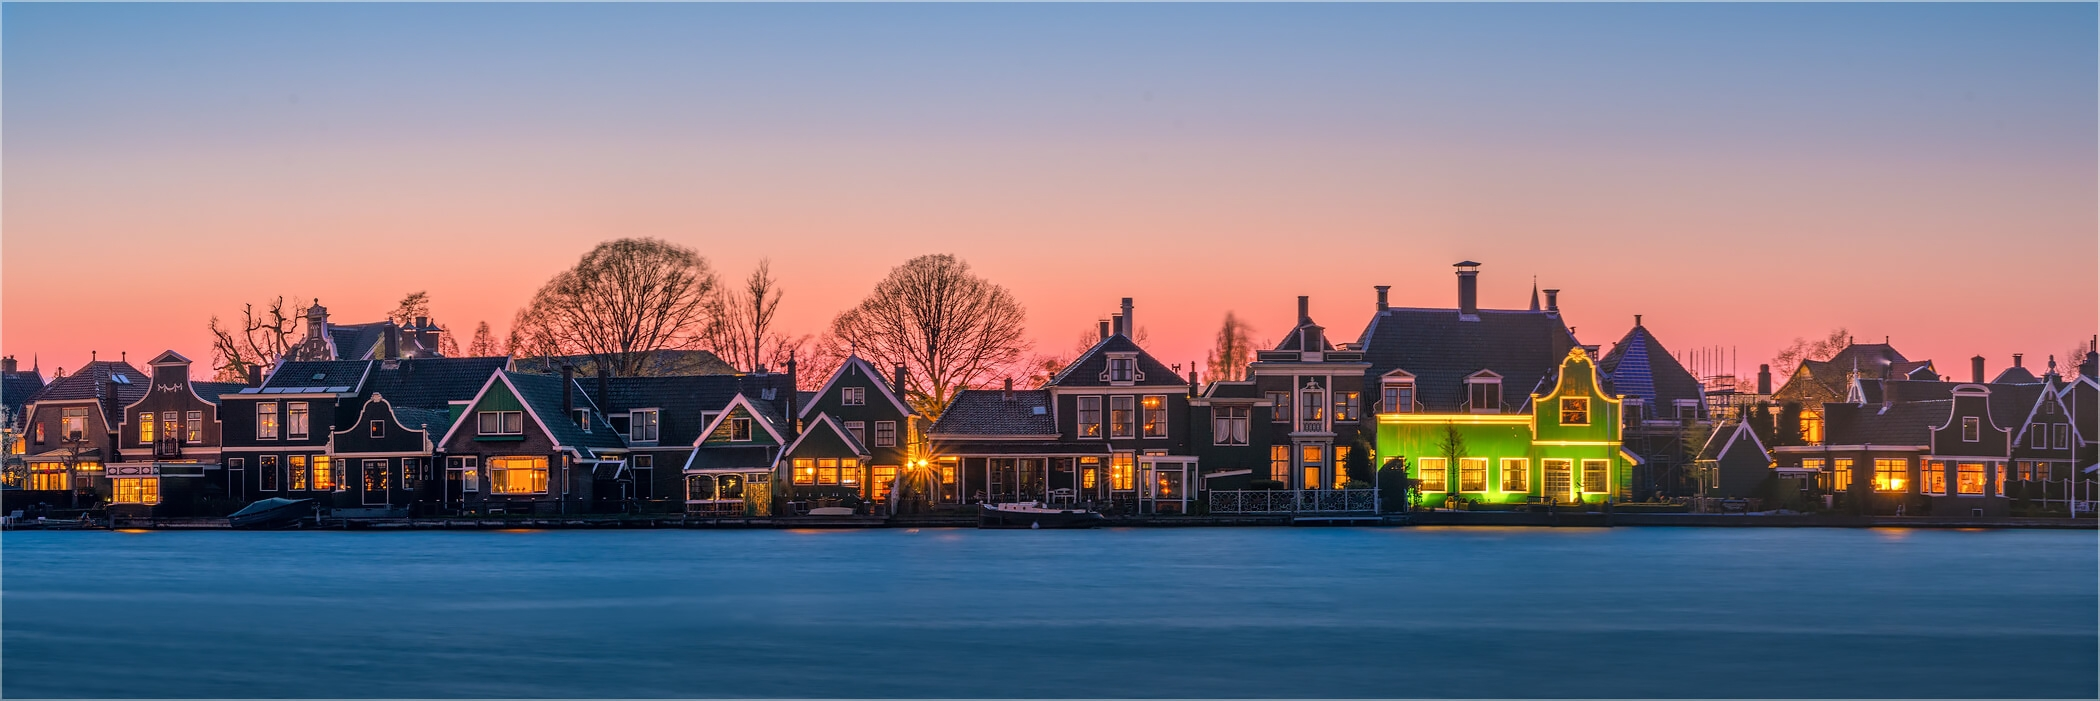 Panoramabild Morgens in Zaandam Holland